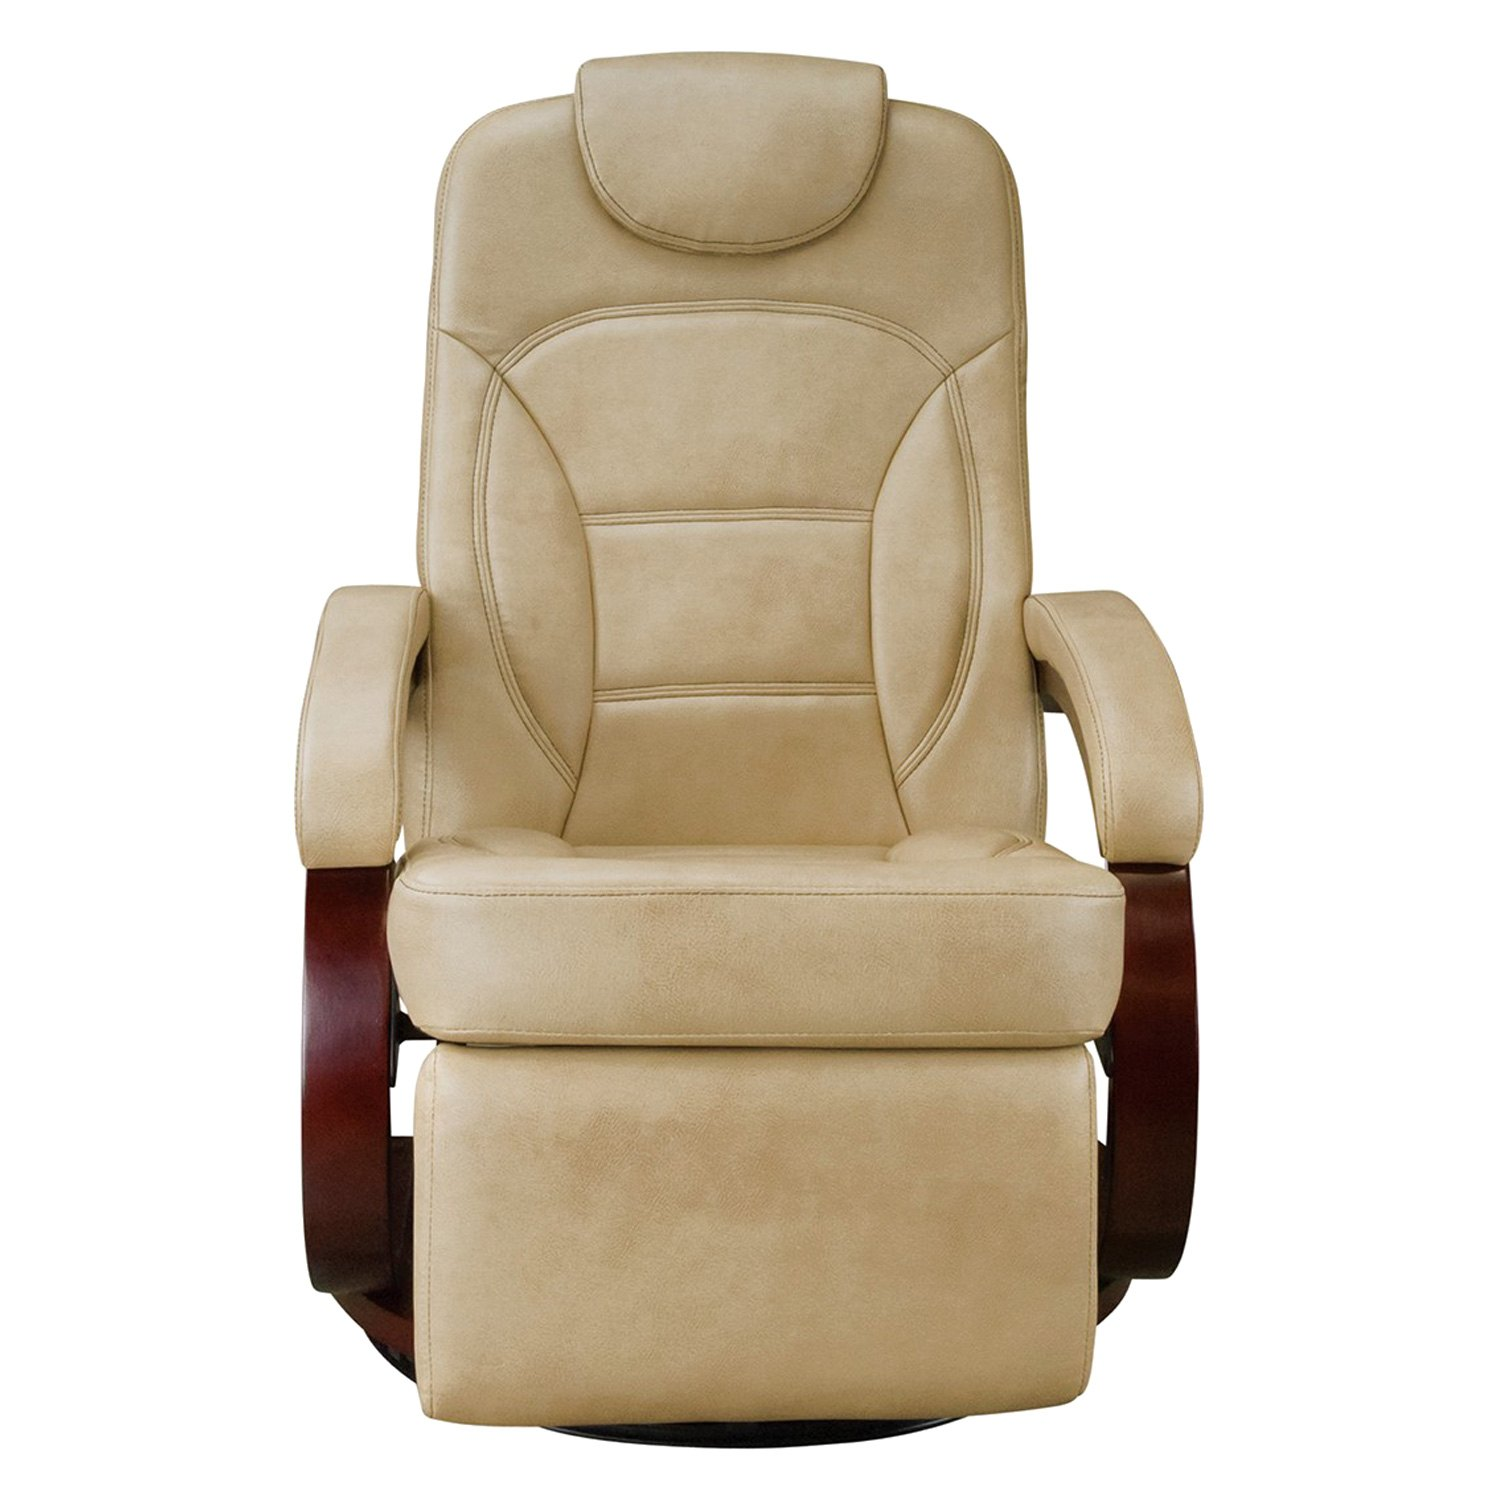 Lippert components euro recliner chair with footrest for Chair recliner